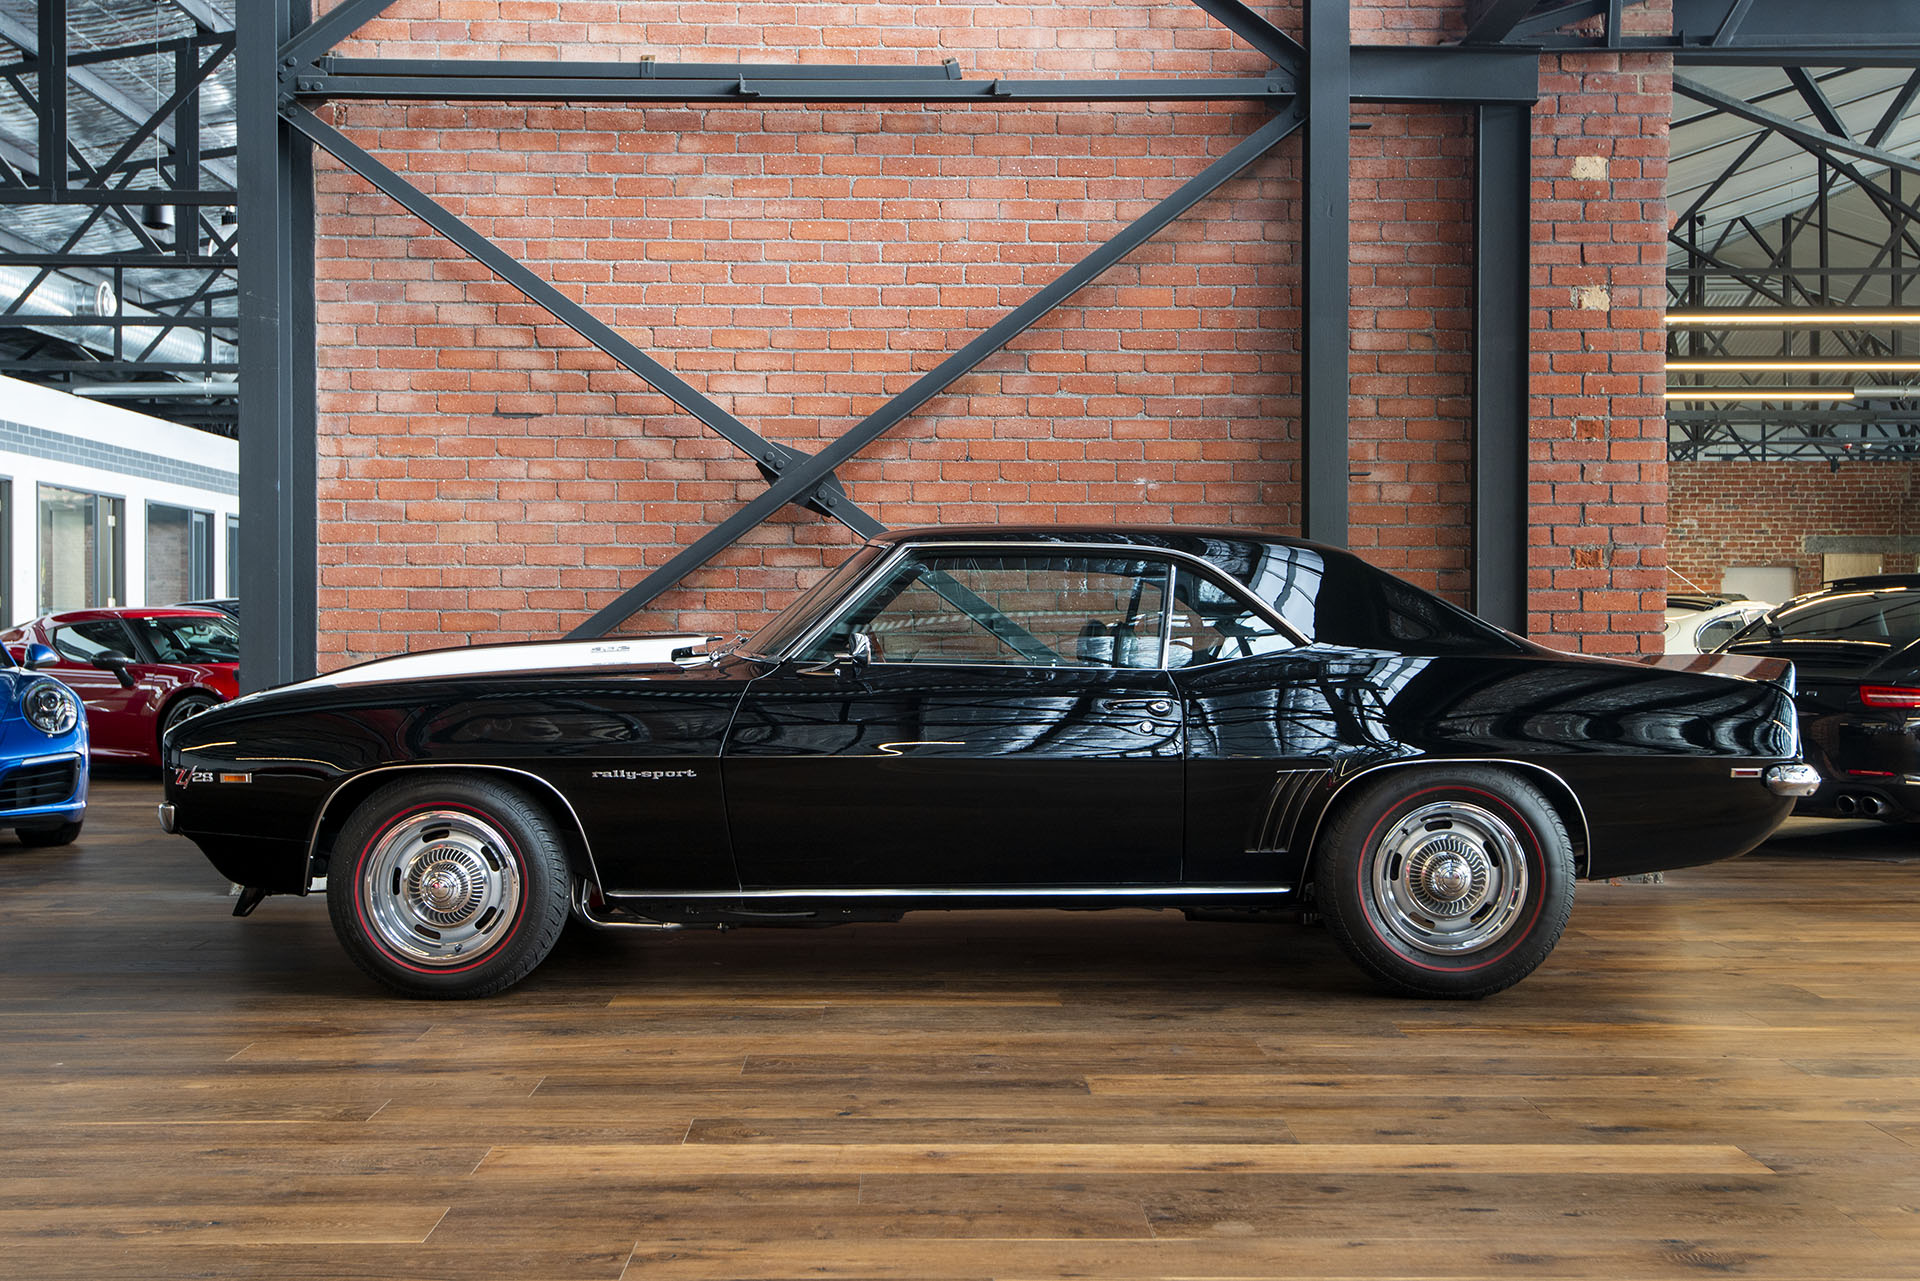 1969 Chevrolet Camaro RS Z28 - Richmonds - Classic and ...